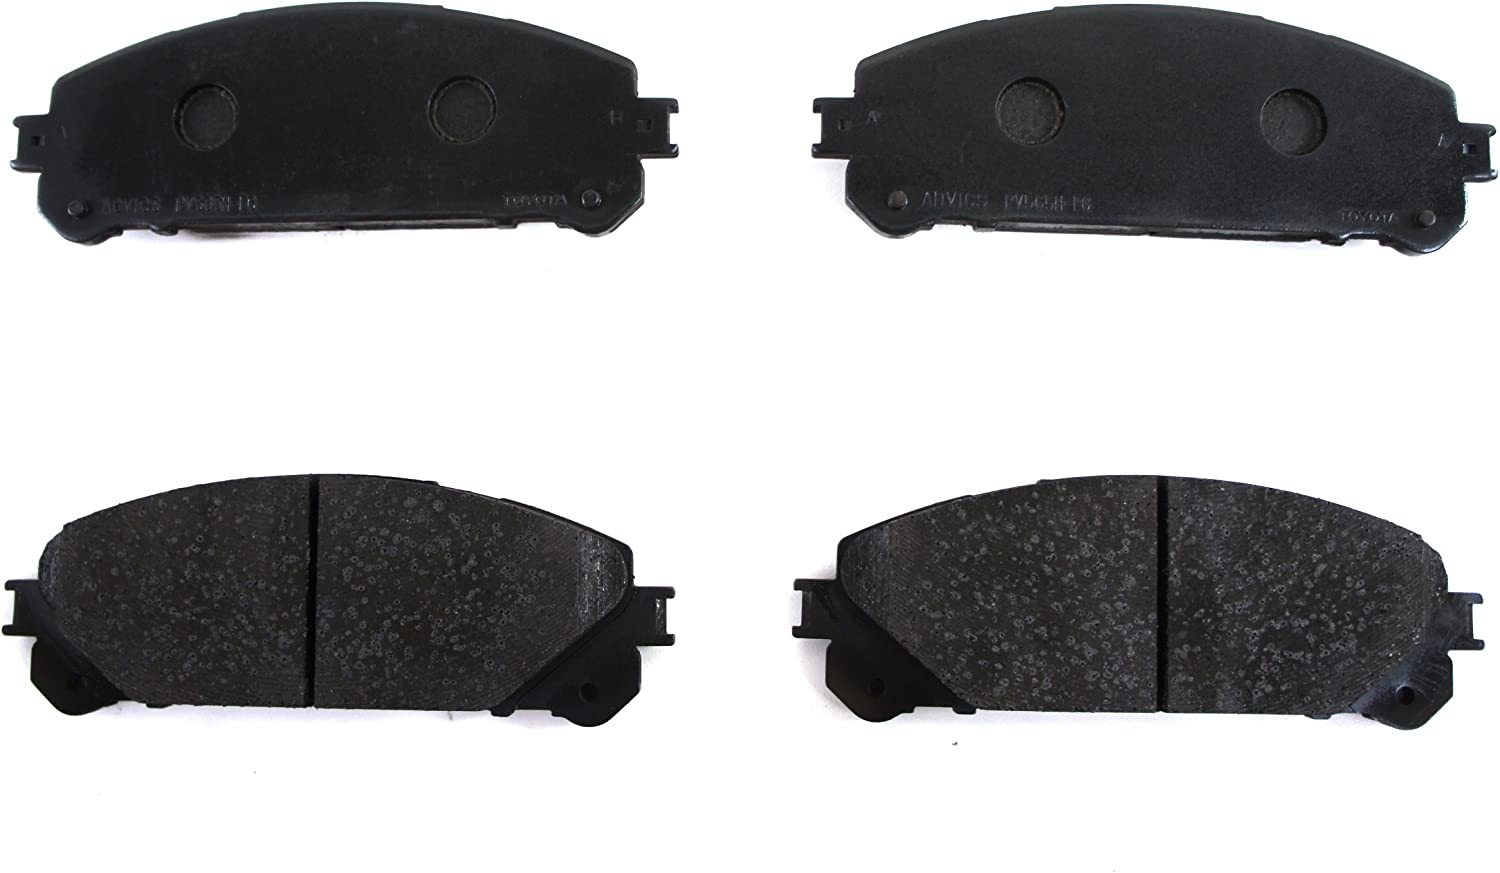 2008-2013 JPP HIGHLANDER  FRONT Brake Pads NEW genuine Toyota OEM 04465-48150